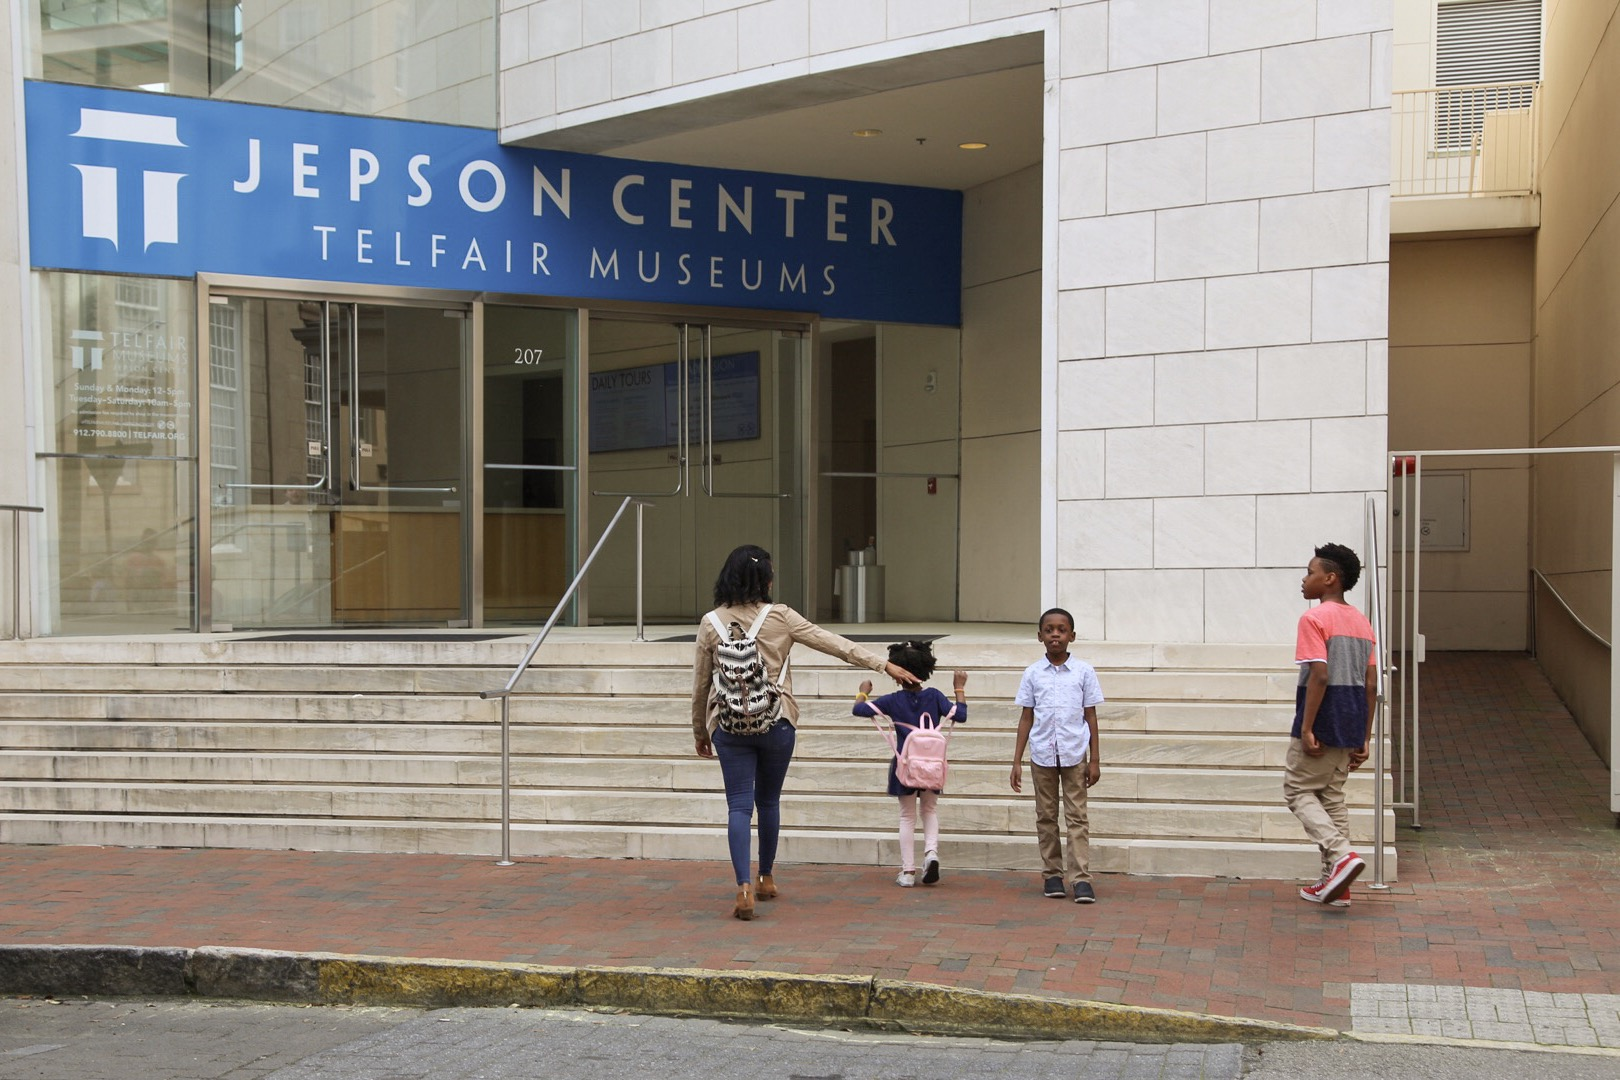 Shelly C Lately Visits Telfair Museums in Savannah GA. Single Mom & Lifestyle blogger Shelly Carpenter travels with children. Jepson Center